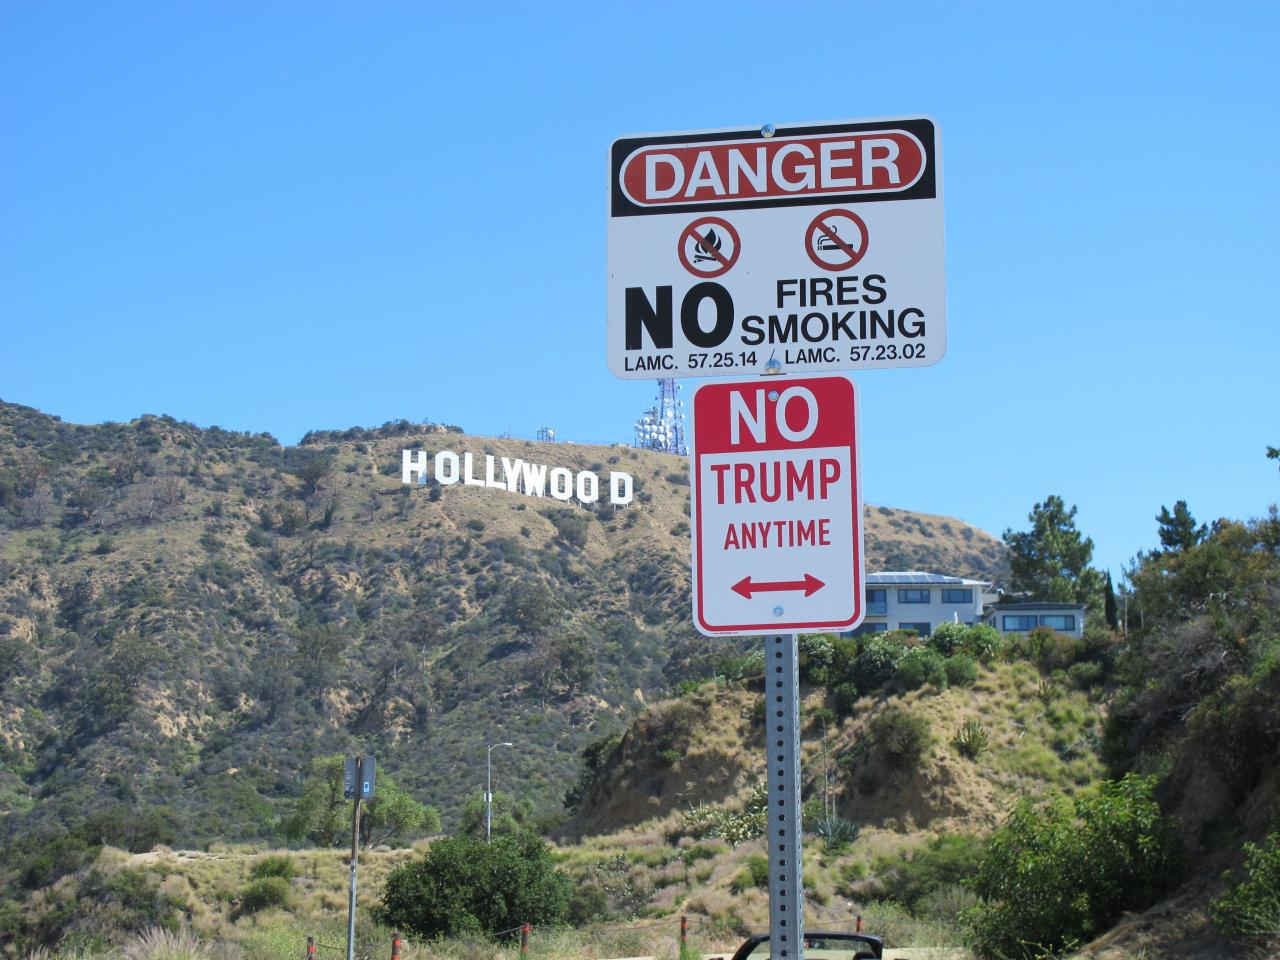 'No Trump Anytime' signs are popping up around the country